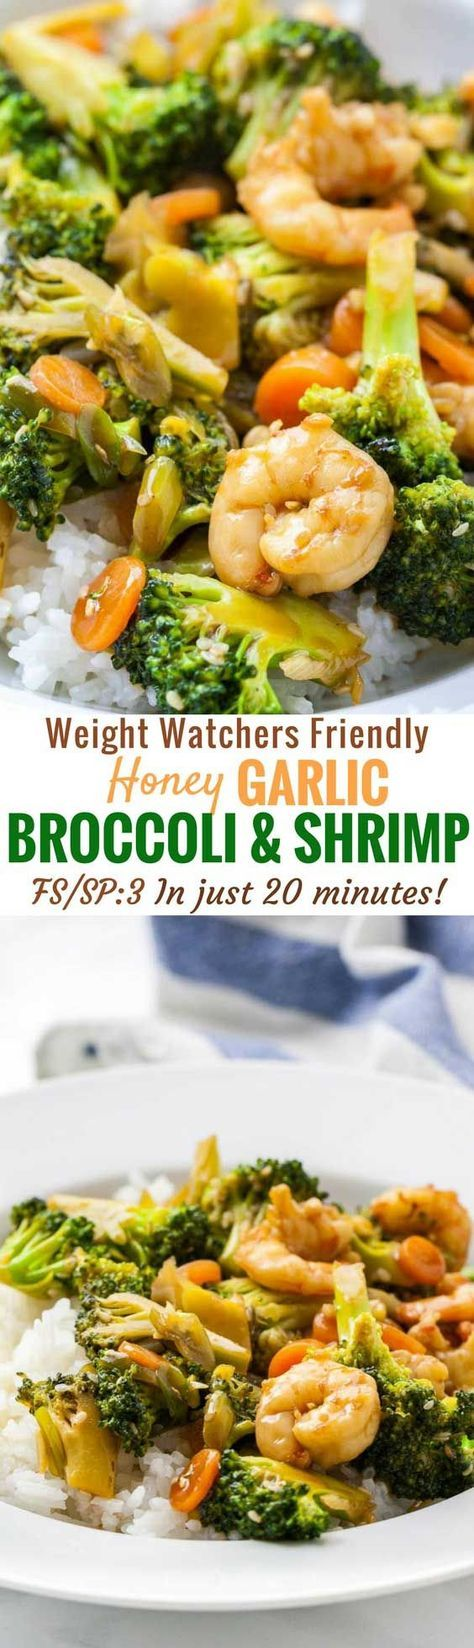 Honey Garlic Shrimp and Broccoli is one of my favorite easy Asian dishes with a flavorful sauce and tender vegetables that can be made in less than 20 minutes with just a few ingredients. It's super easy to put together and has just 3 weight watchers smart points per serving! #shrimp #weightwatchers #freestyle #lightmeal #stirfry #weeknightmeal #easydinner